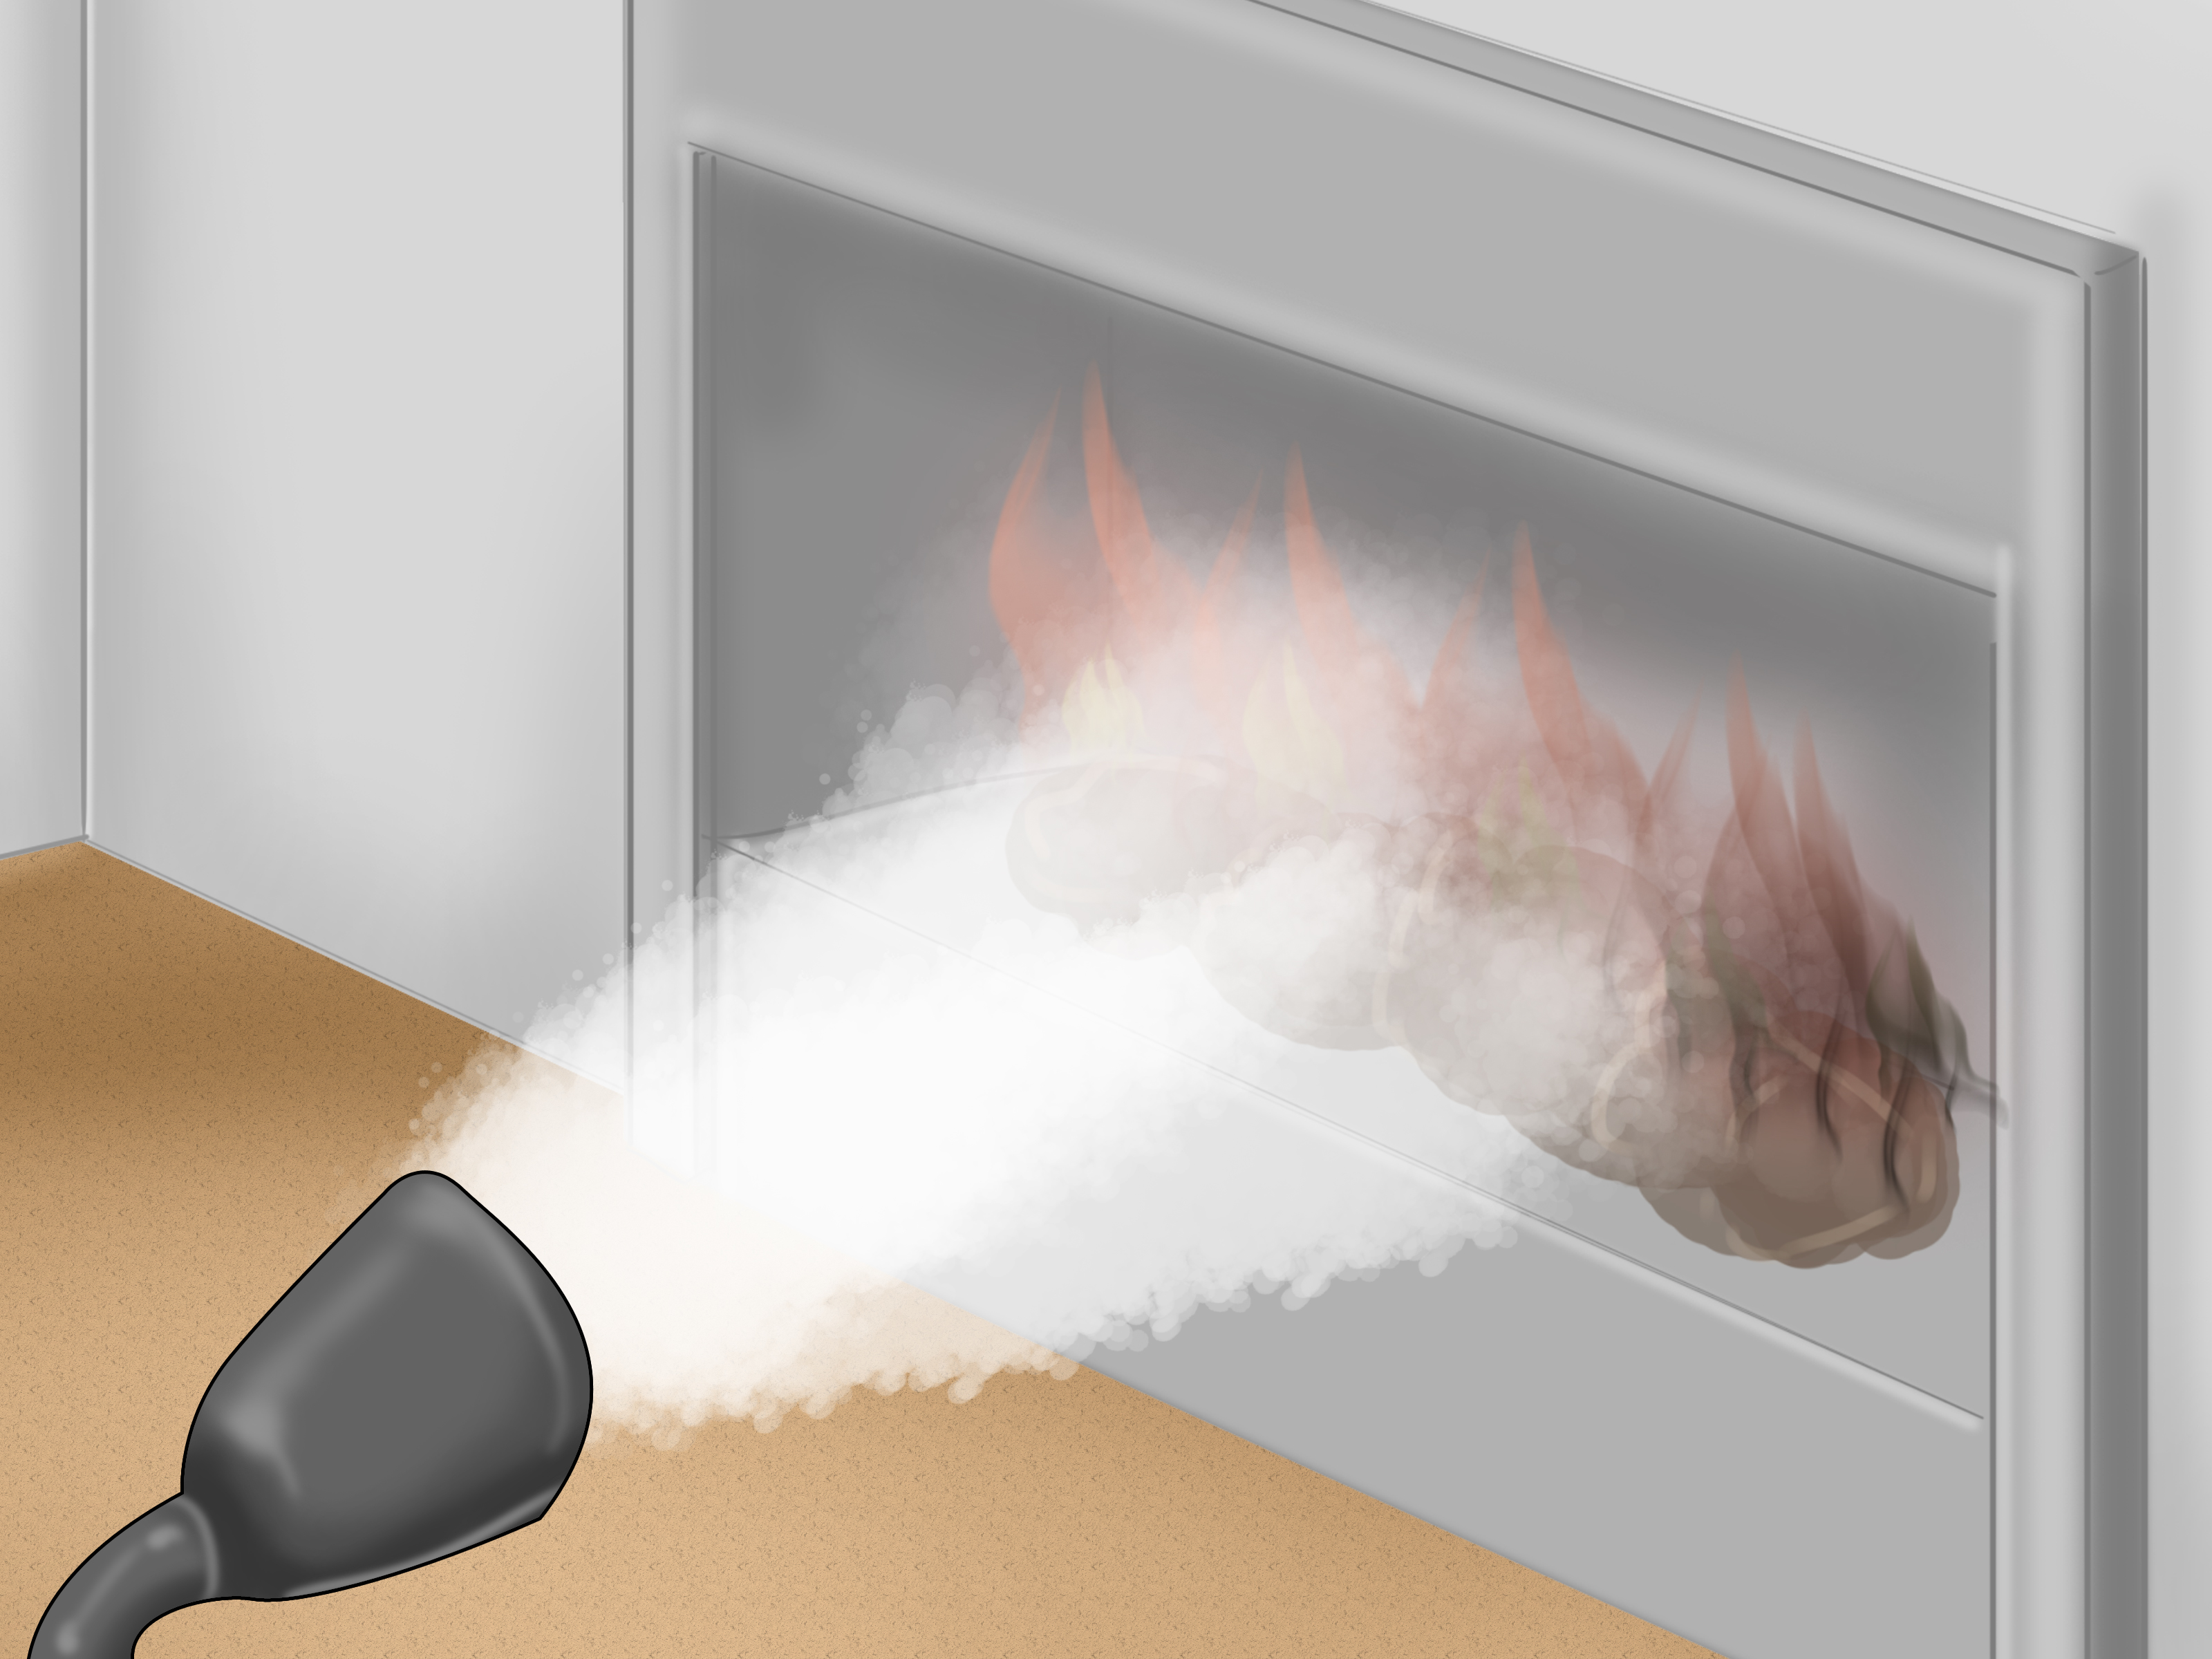 How To Operate A Fireplace How To Safely Use An Ethanol Fireplace 5 Steps With Pictures